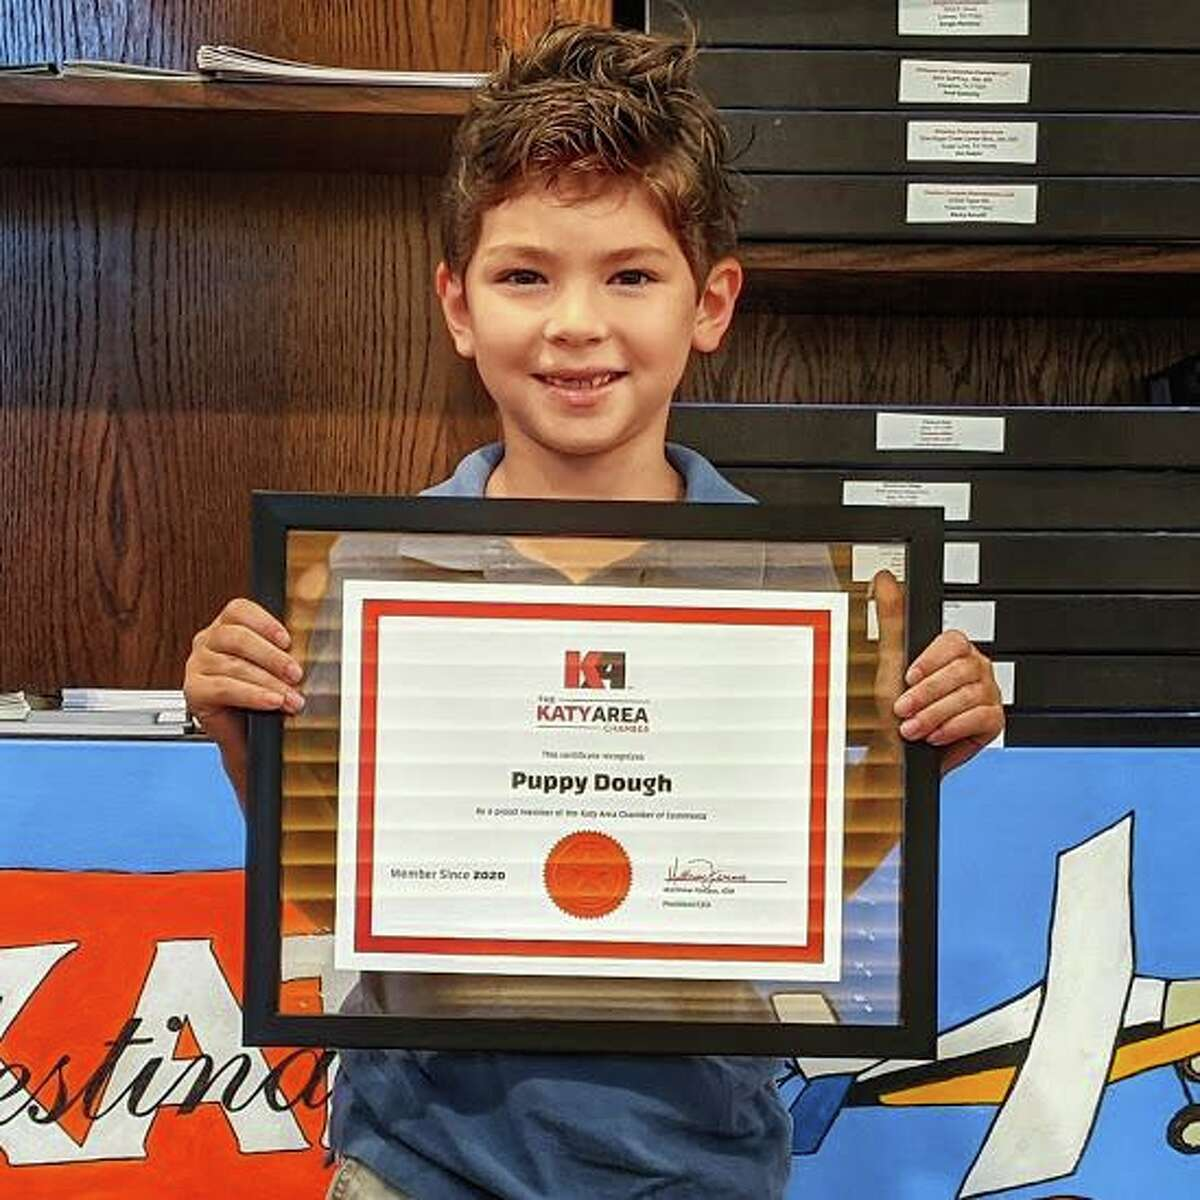 Puppy Dough Owner Isaiah Hodge, 7, shows his plaque as a member of the Katy Area Chamber of Commerce.